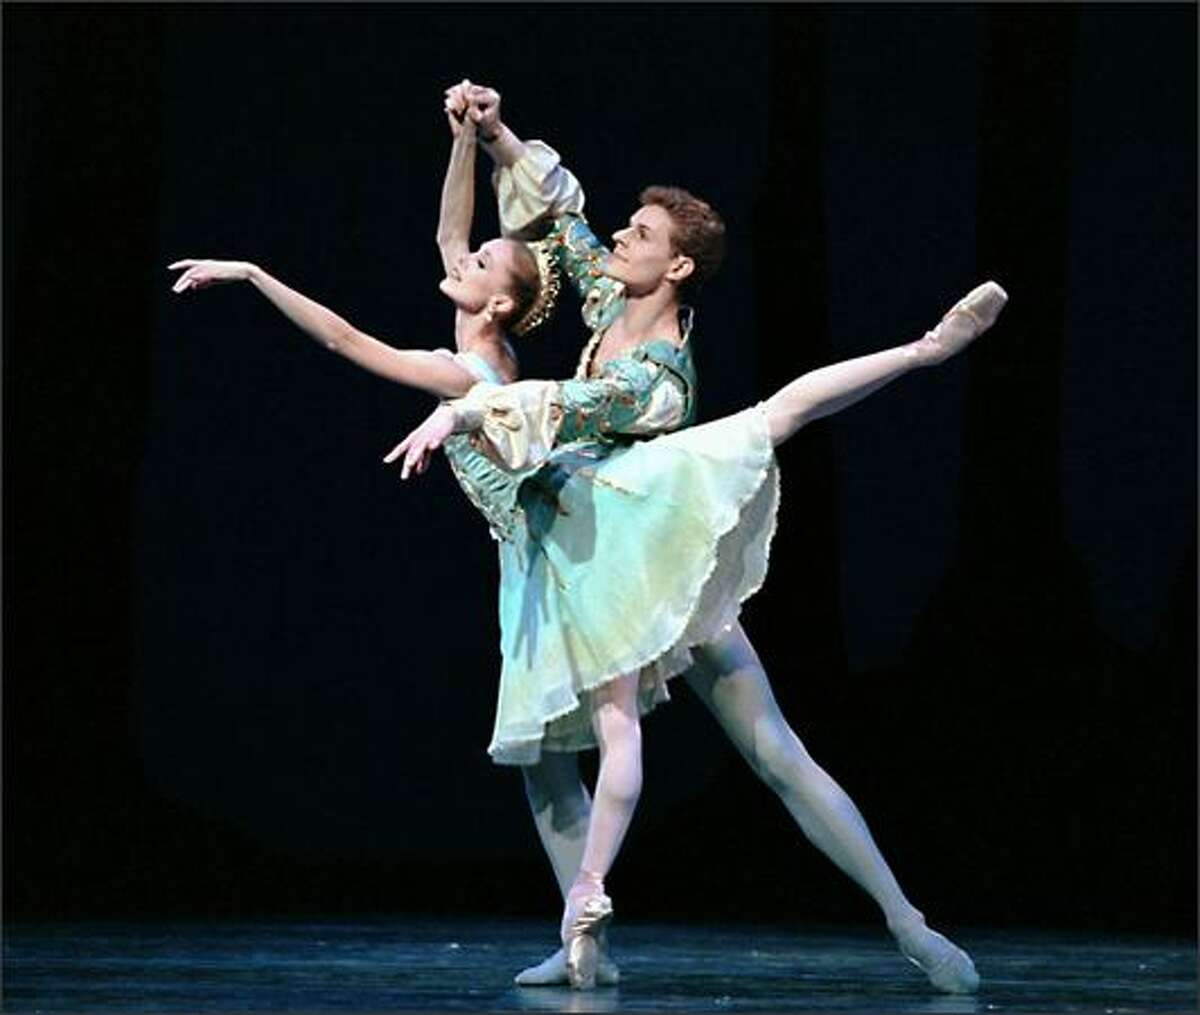 Pacific Northwest Ballet principal dancers Louise Nadeau and Olivier Wevers in George Balanchine's A Midsummer Night's Dream.